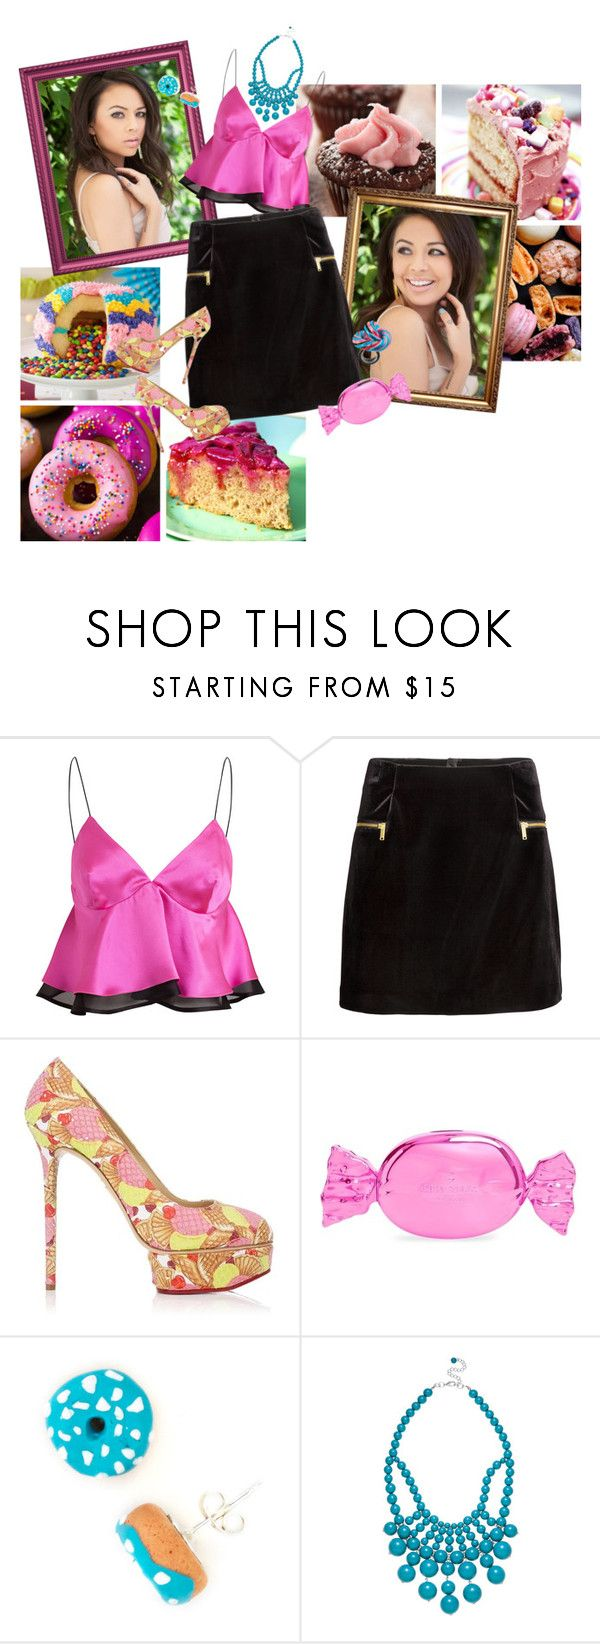 """""""Ginger Breadhouse"""" by srta-sr ❤ liked on Polyvore featuring Nordic Ware, Trager Delaney, H&M, Charlotte Olympia, Kate Spade, Papabubble and Ashley Stewart"""